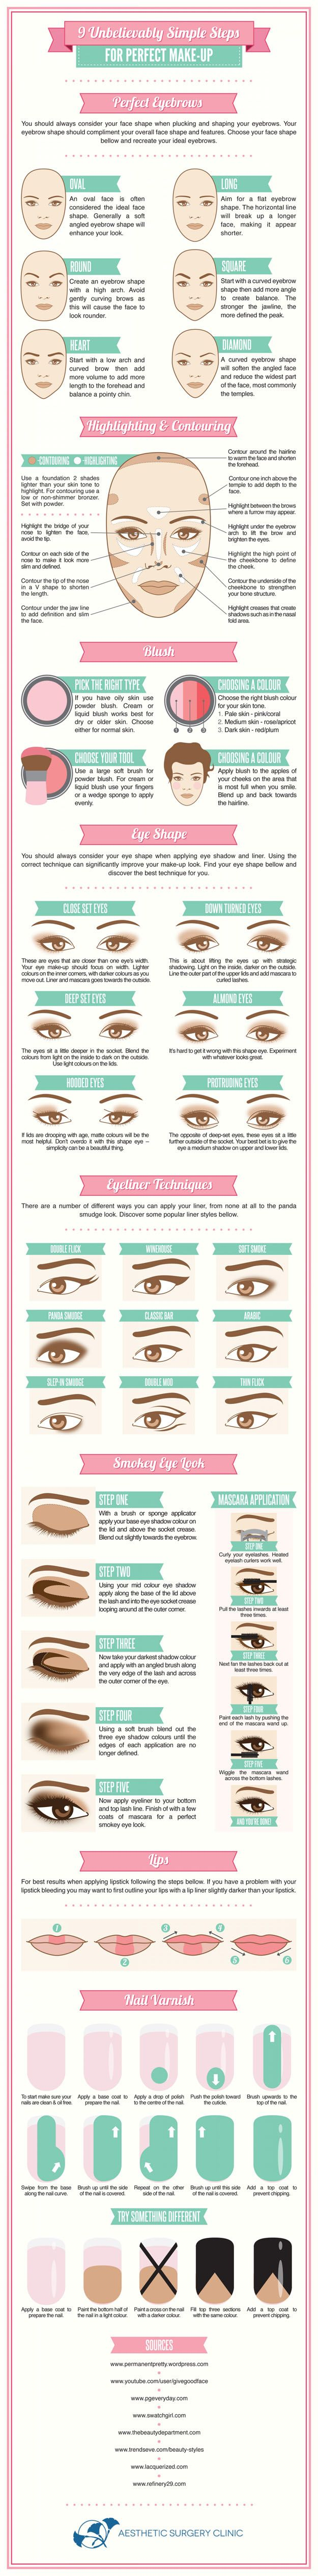 Everyday Makeup Tips for All Skin Types by Makeup Tutorials at http://makeuptutorials.com/makeup-tutorials-beauty-tips